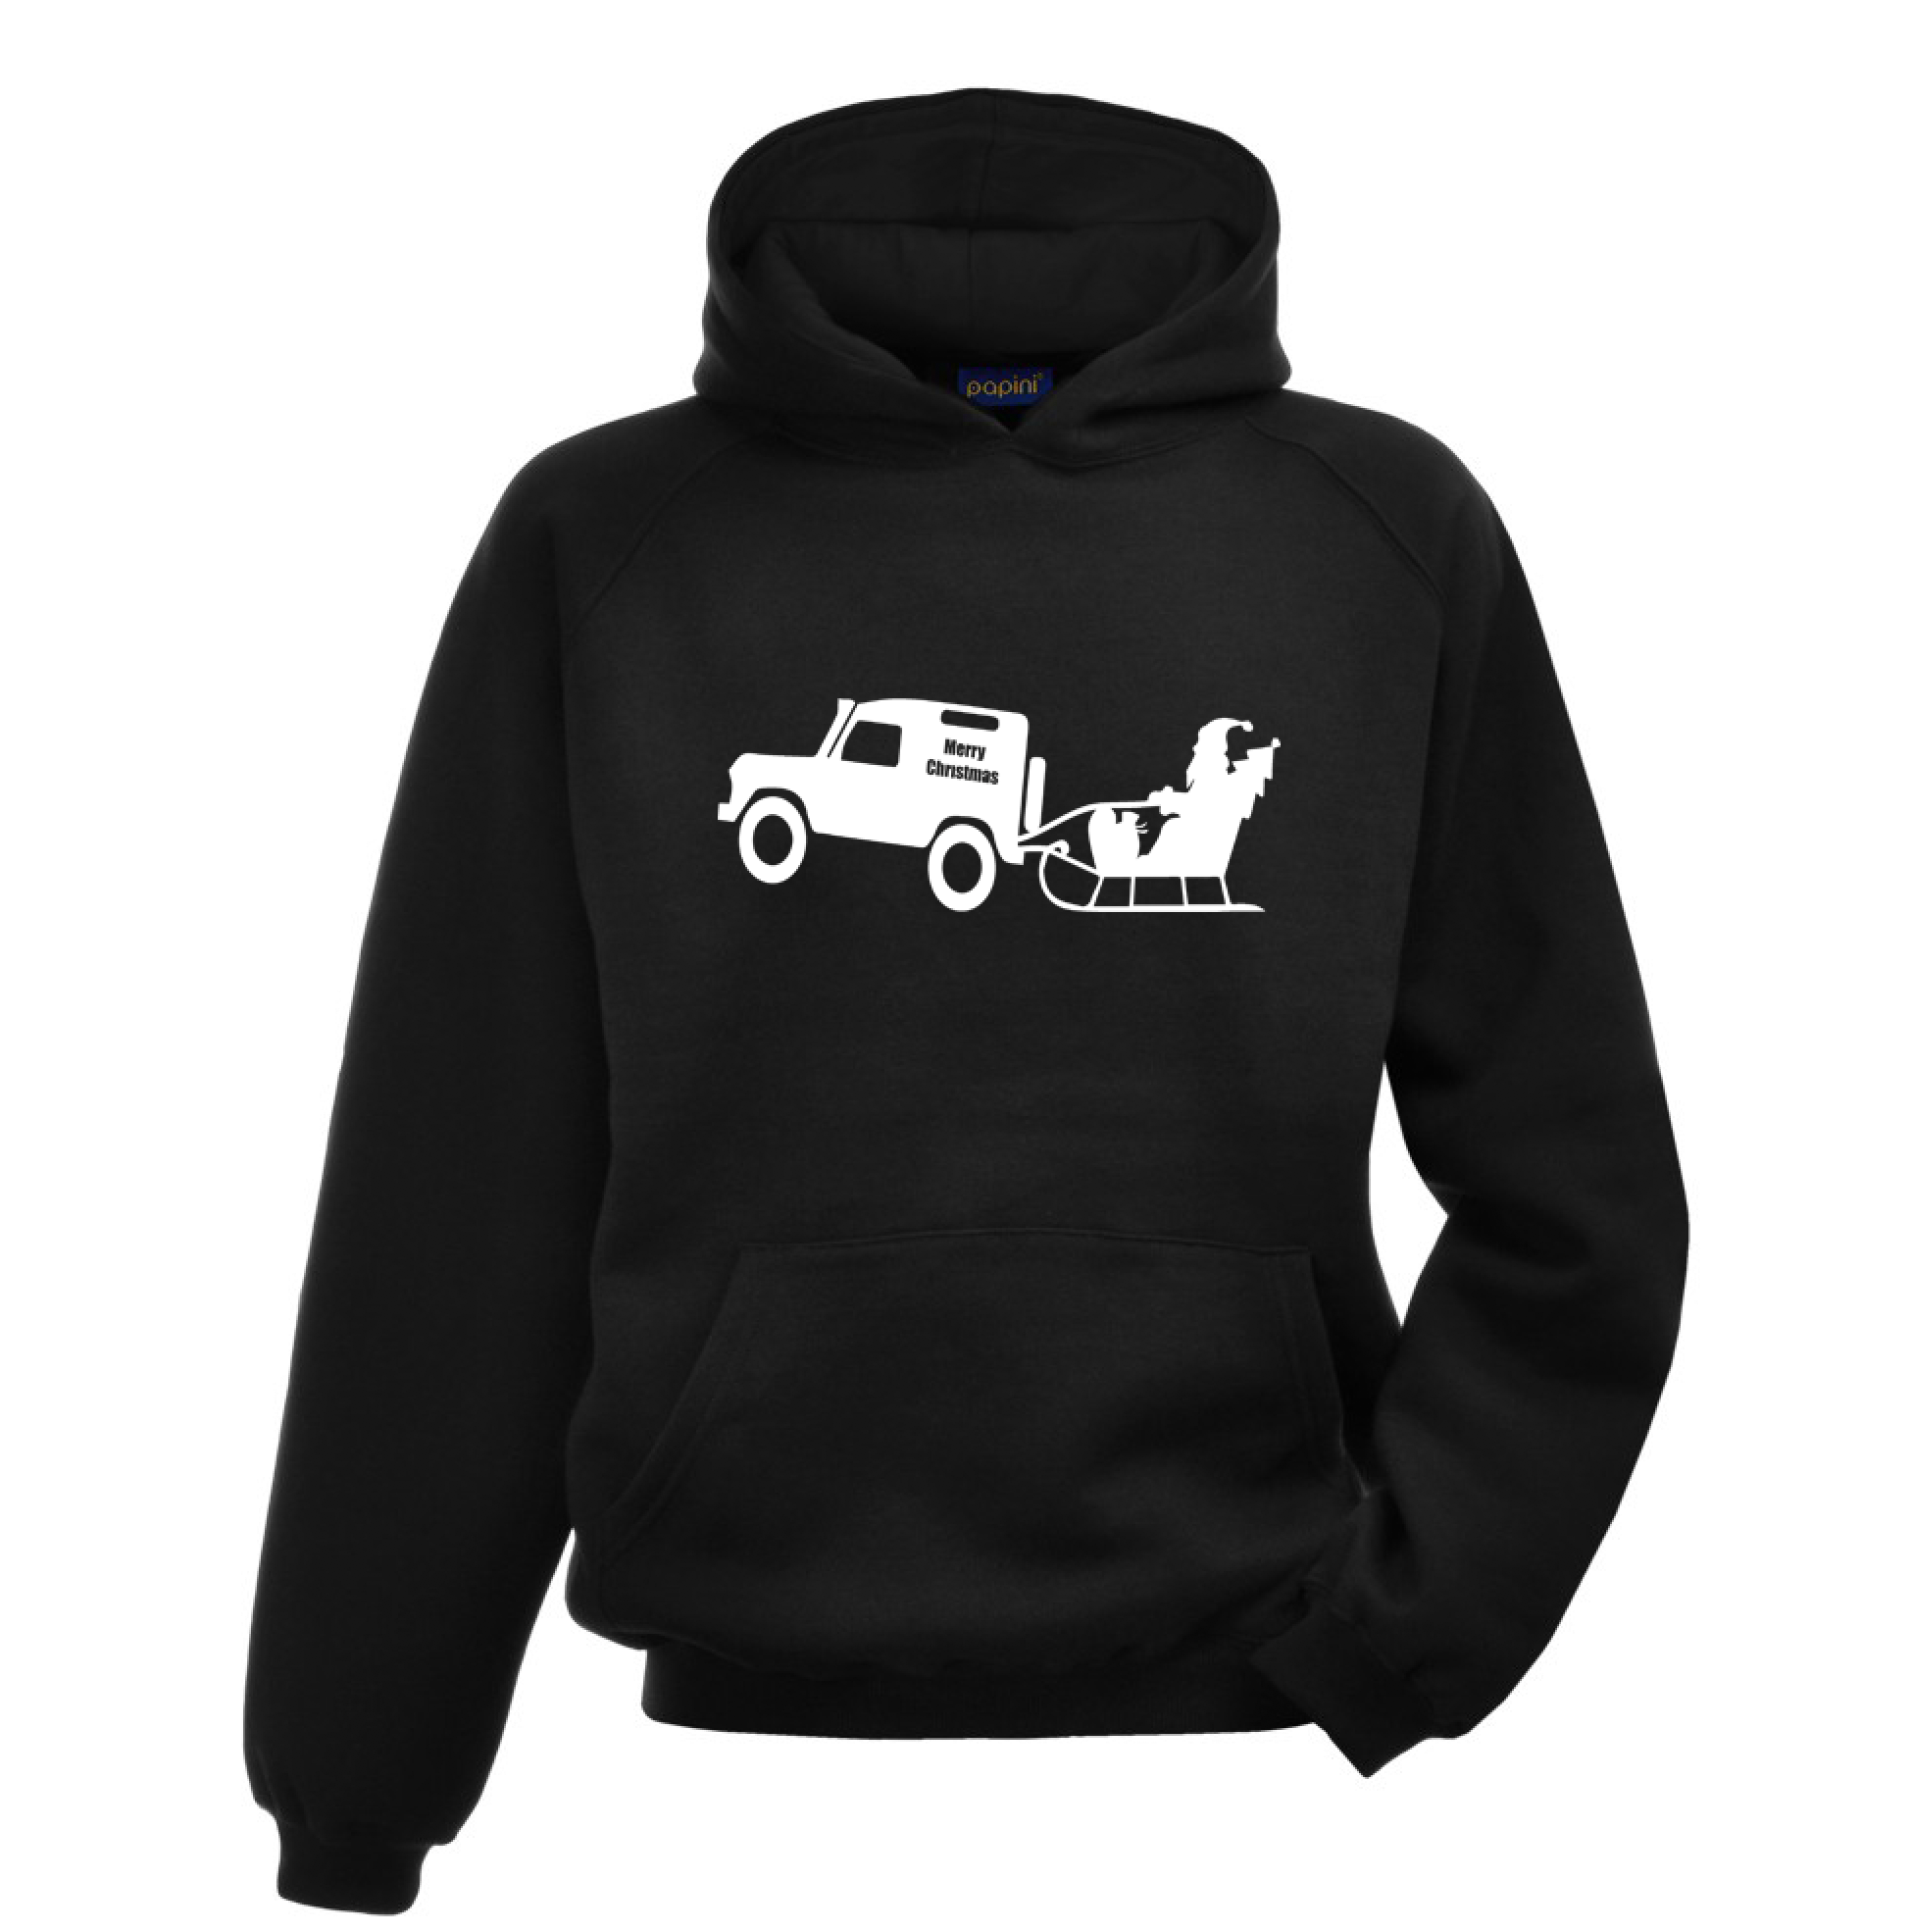 defender landrover best picnic rovers images land rover on pinterest clothing series